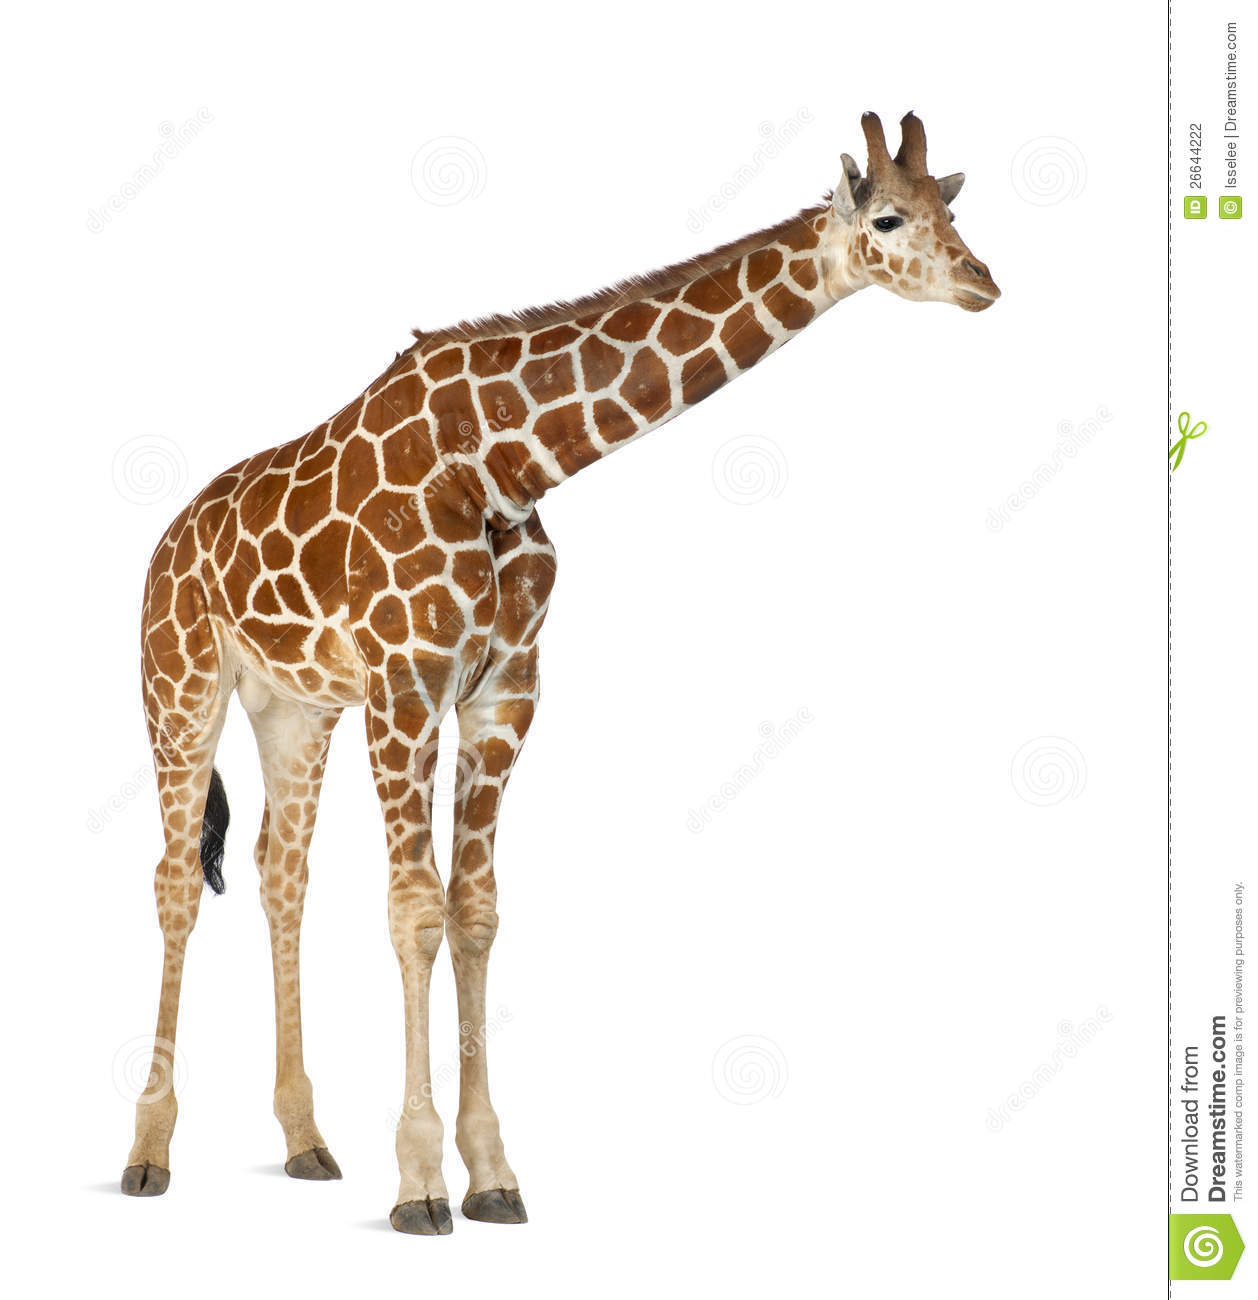 Giraffe Side View Stock Photos, Images, & Pictures.